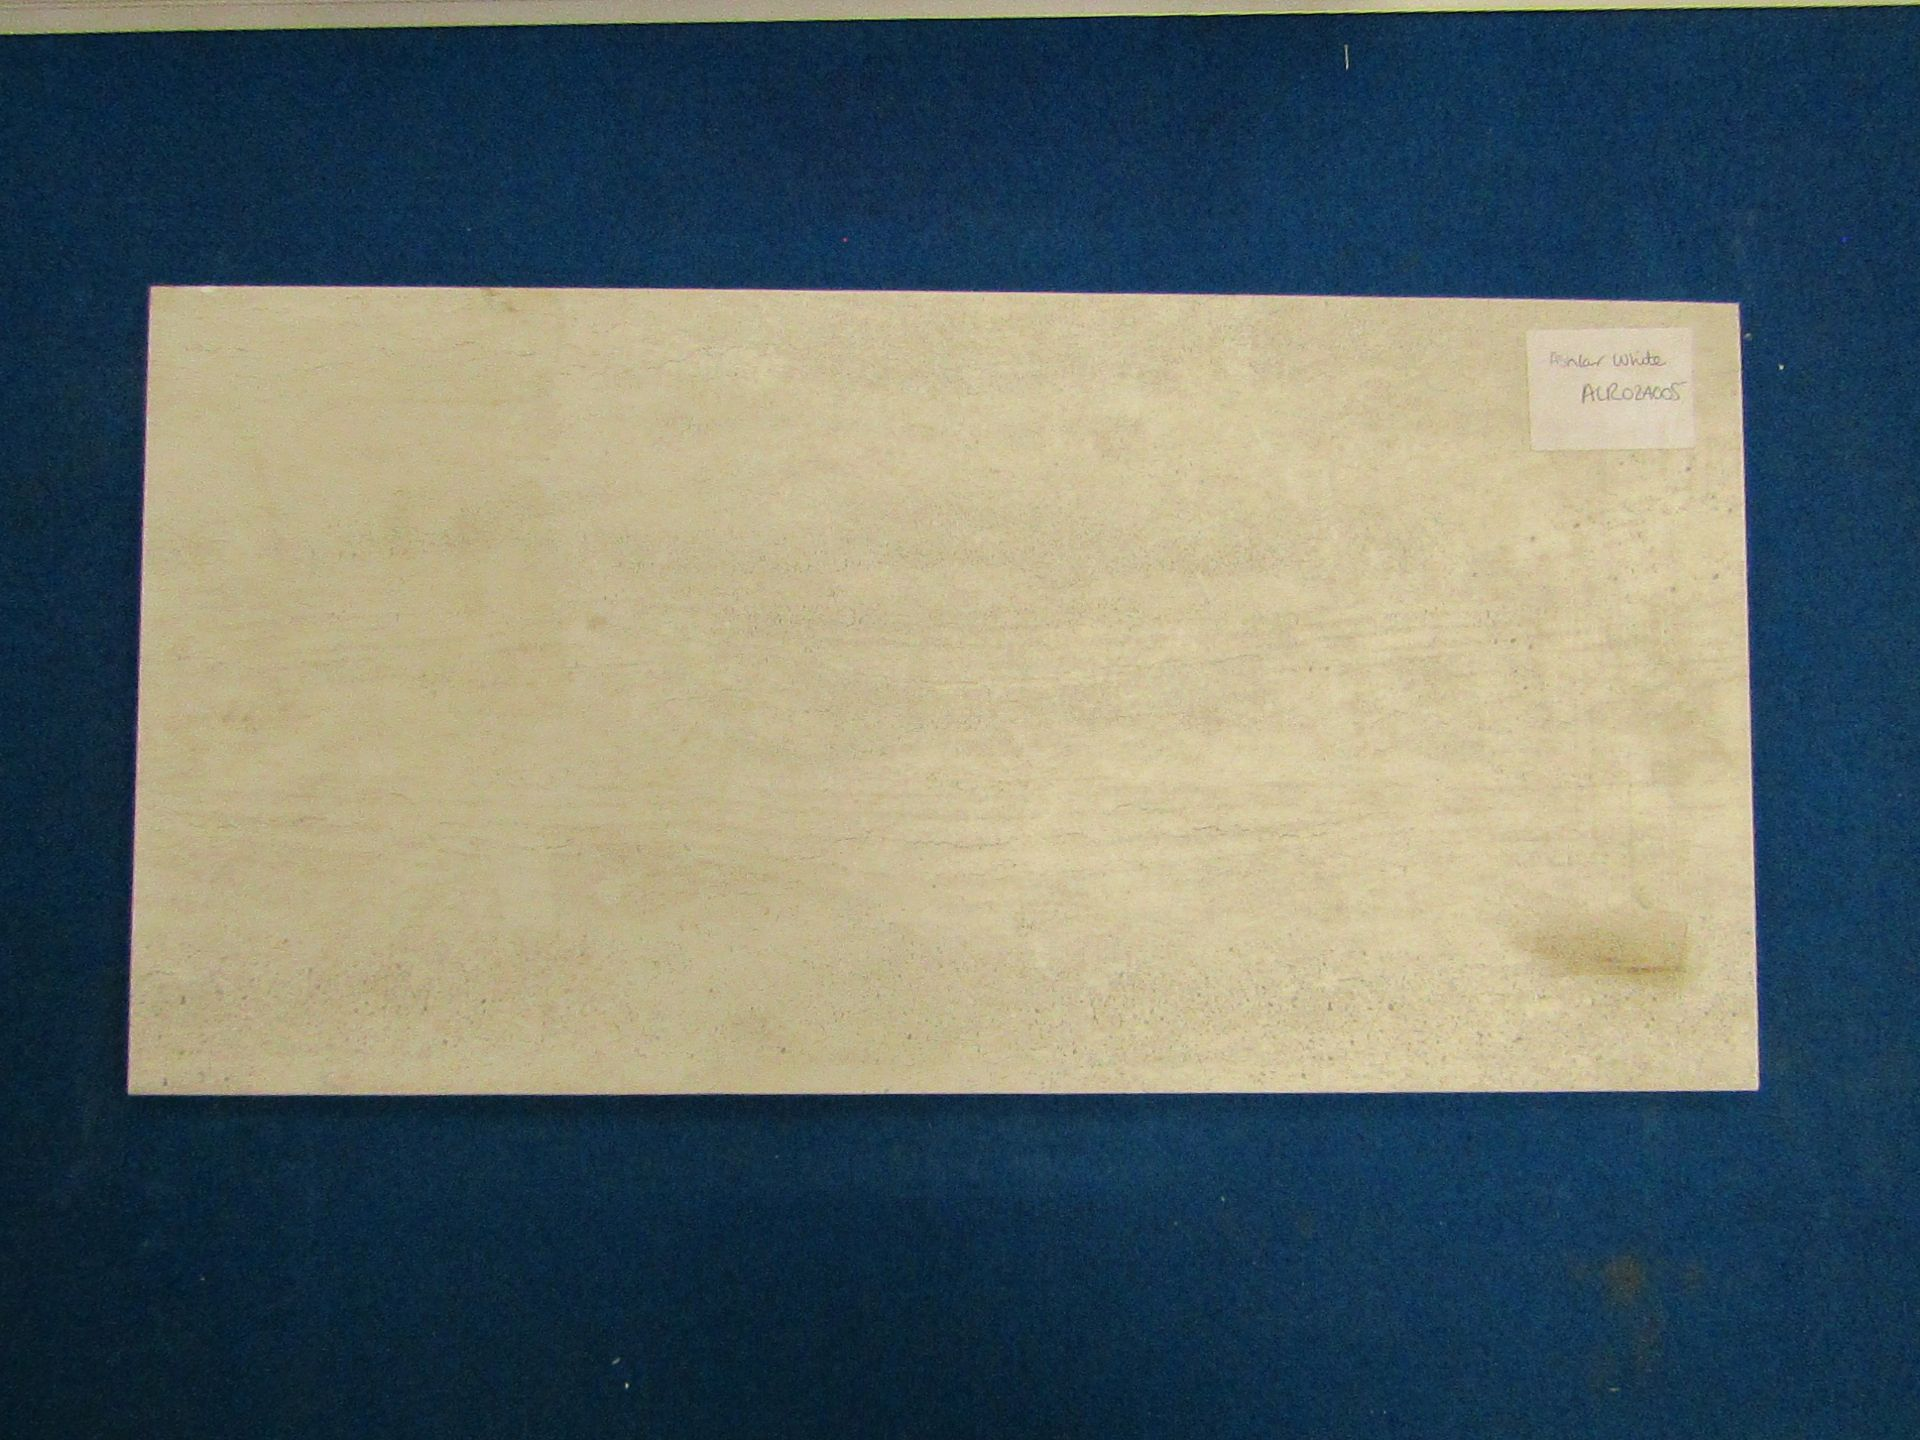 Lot 44 - Pallet of 40x Packs of 5 Aslar White 300x600 wall and Floor Tiles By Johnsons, New, the pallet